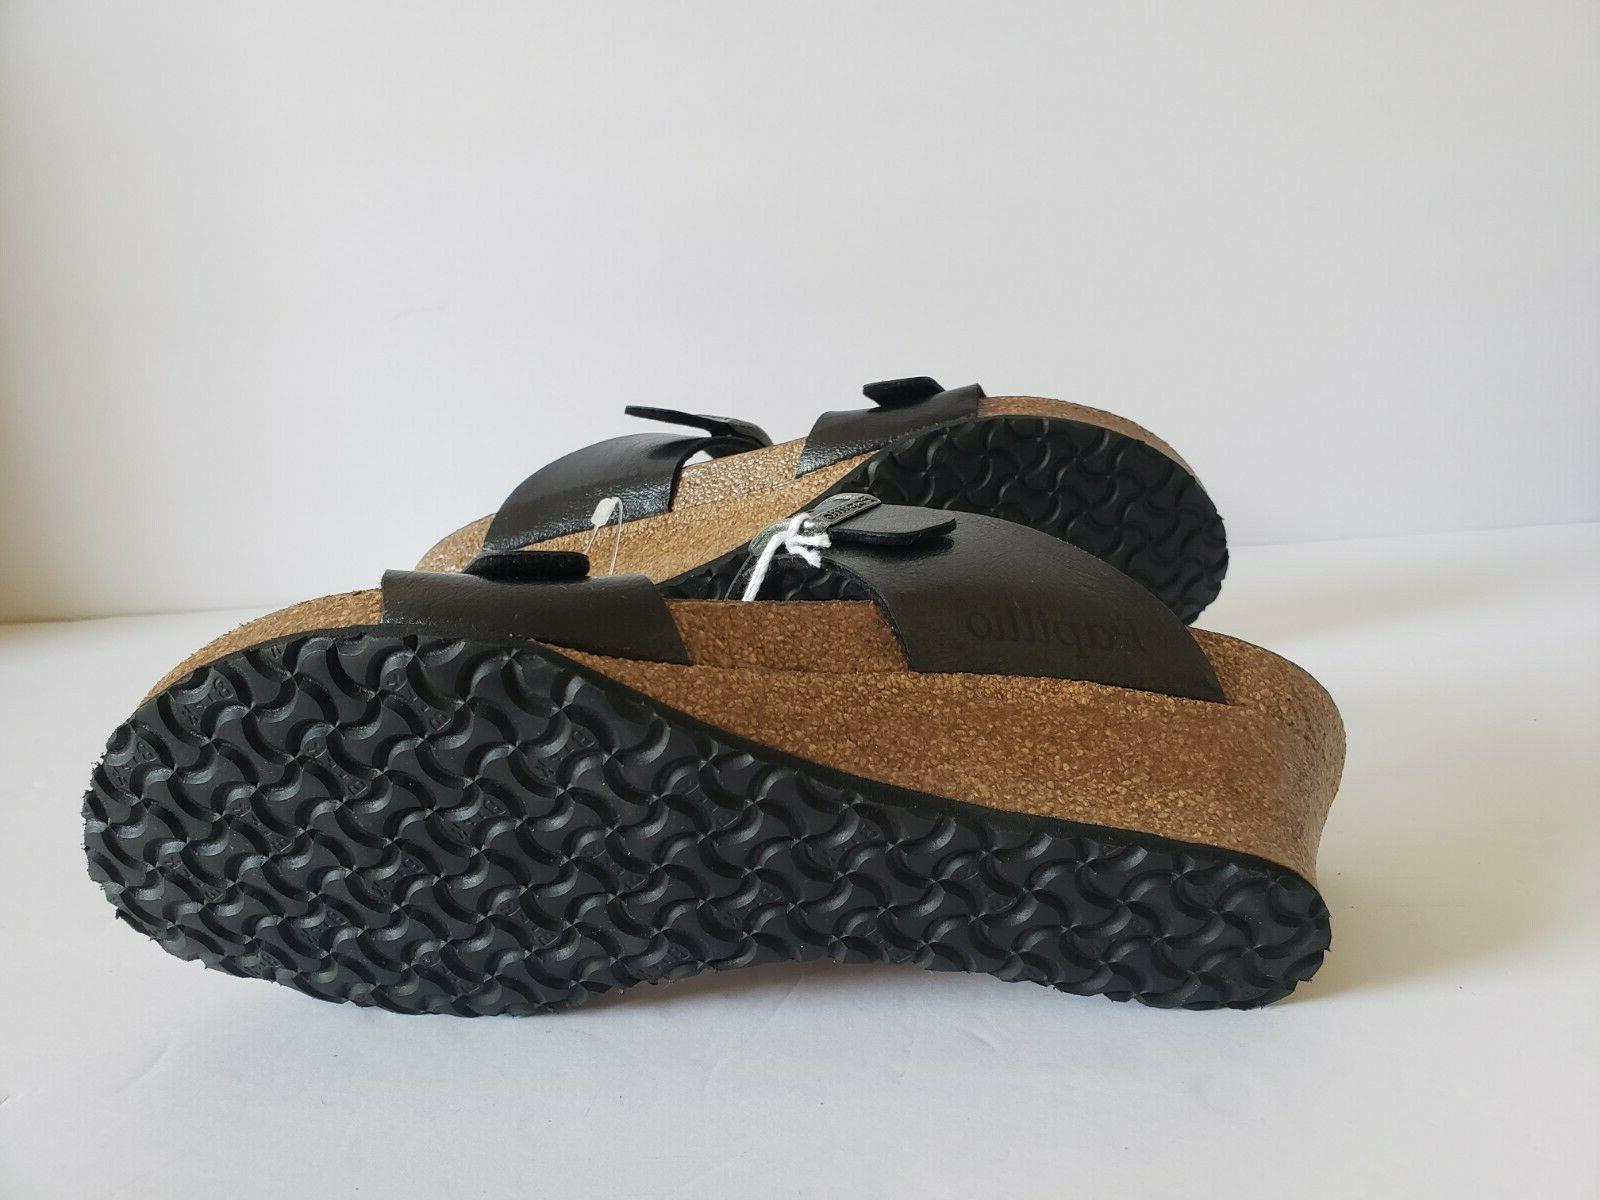 Licorice Wedge Sandals Size EUR 36 US 5 - 5.5